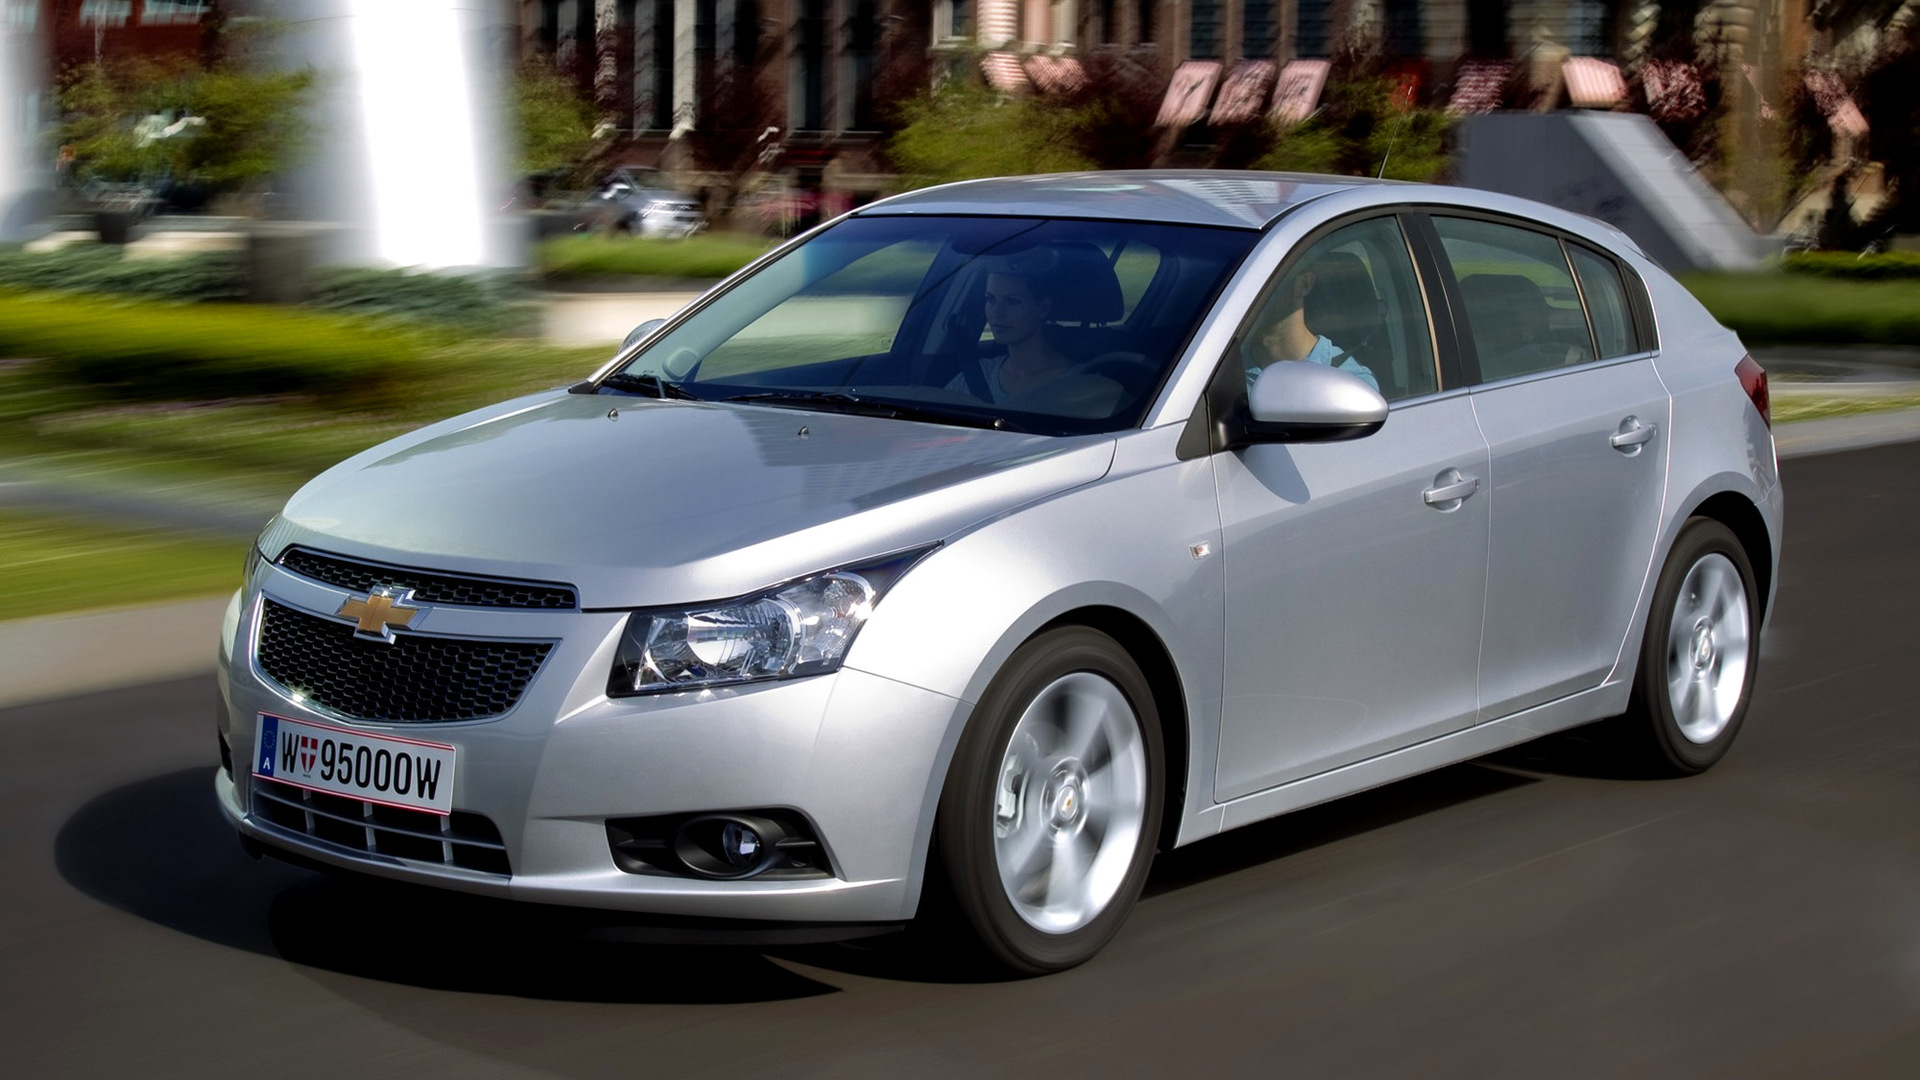 Chevrolet Cruze Hatchback 2011 Wallpapers And Hd Images